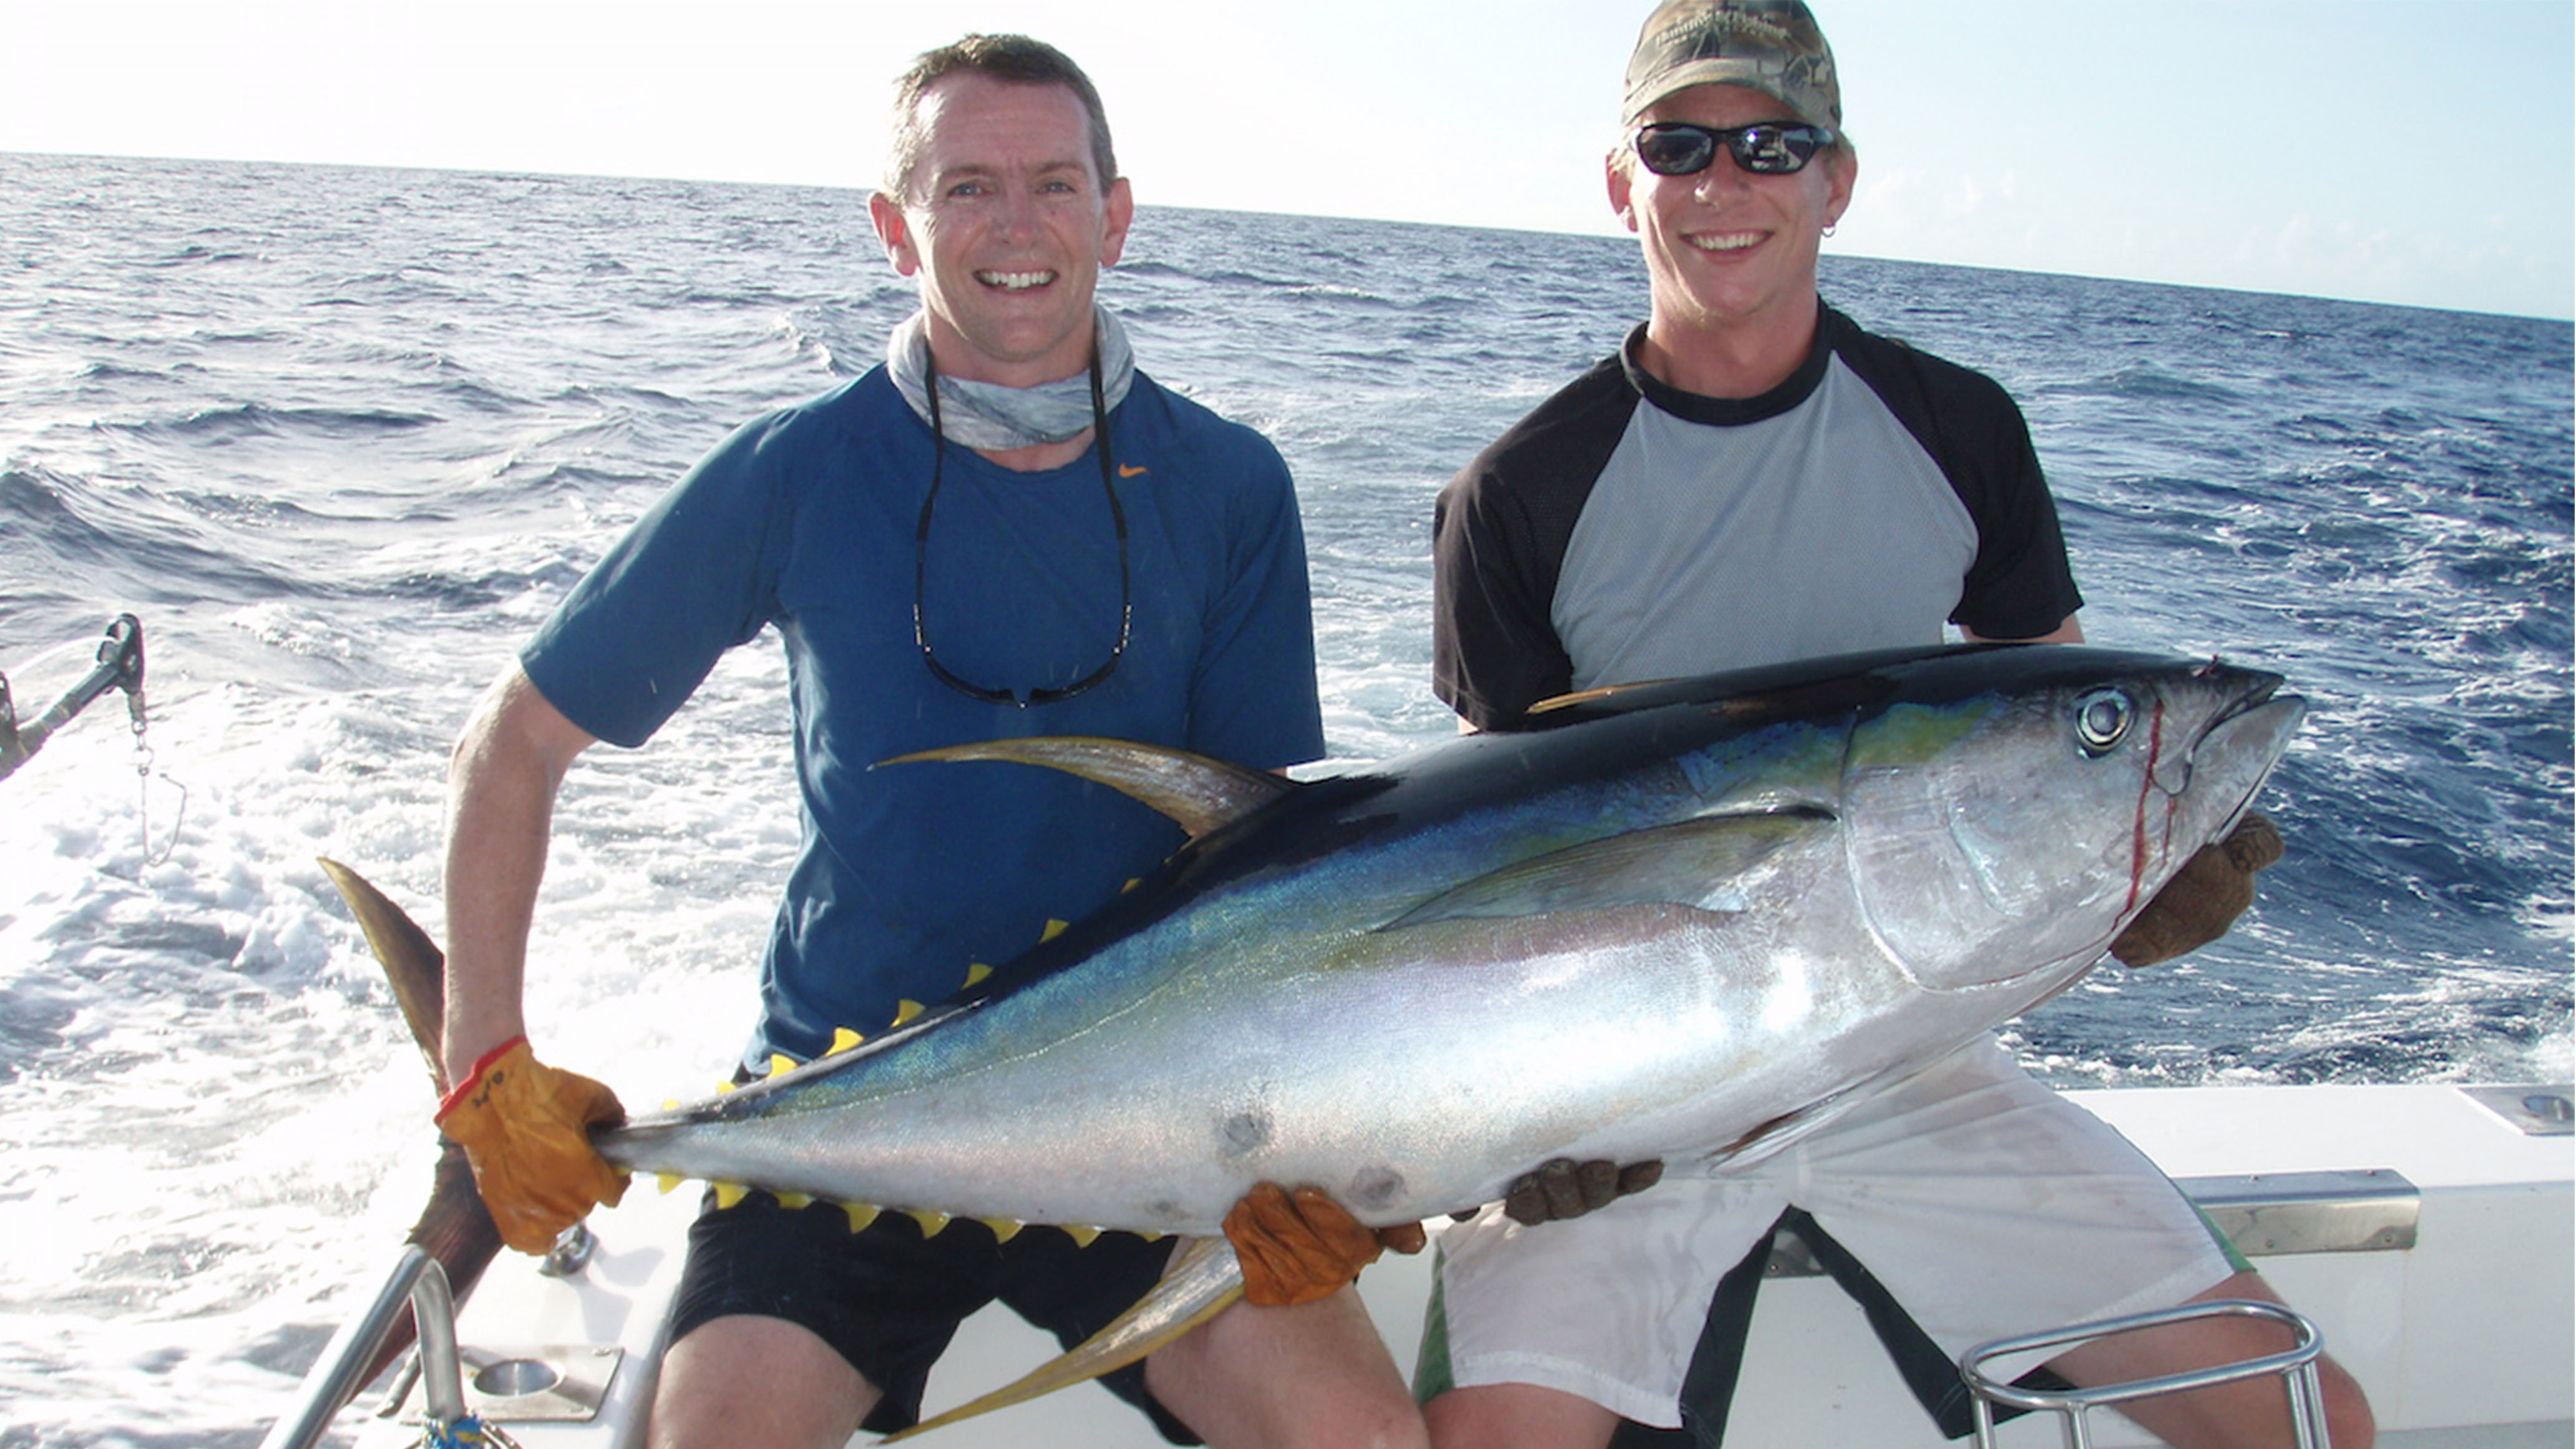 Fish for Blue Marlin, Sailfish, mahimahi,Yellowfin Tuna with KIWI MAGIC – based in Vava'u 12 months of the year.